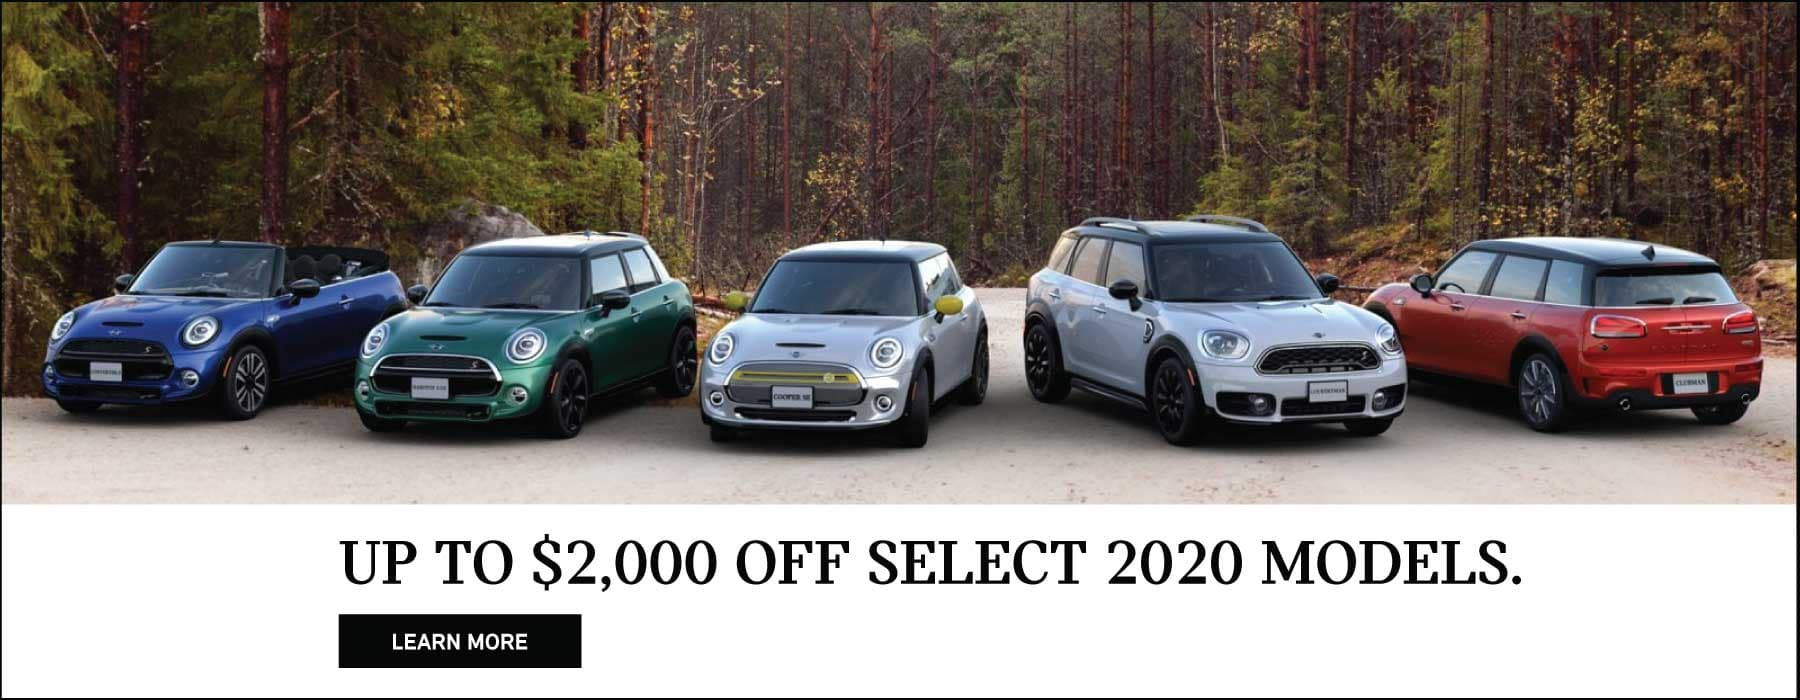 Up to $2,000 off select MINI models